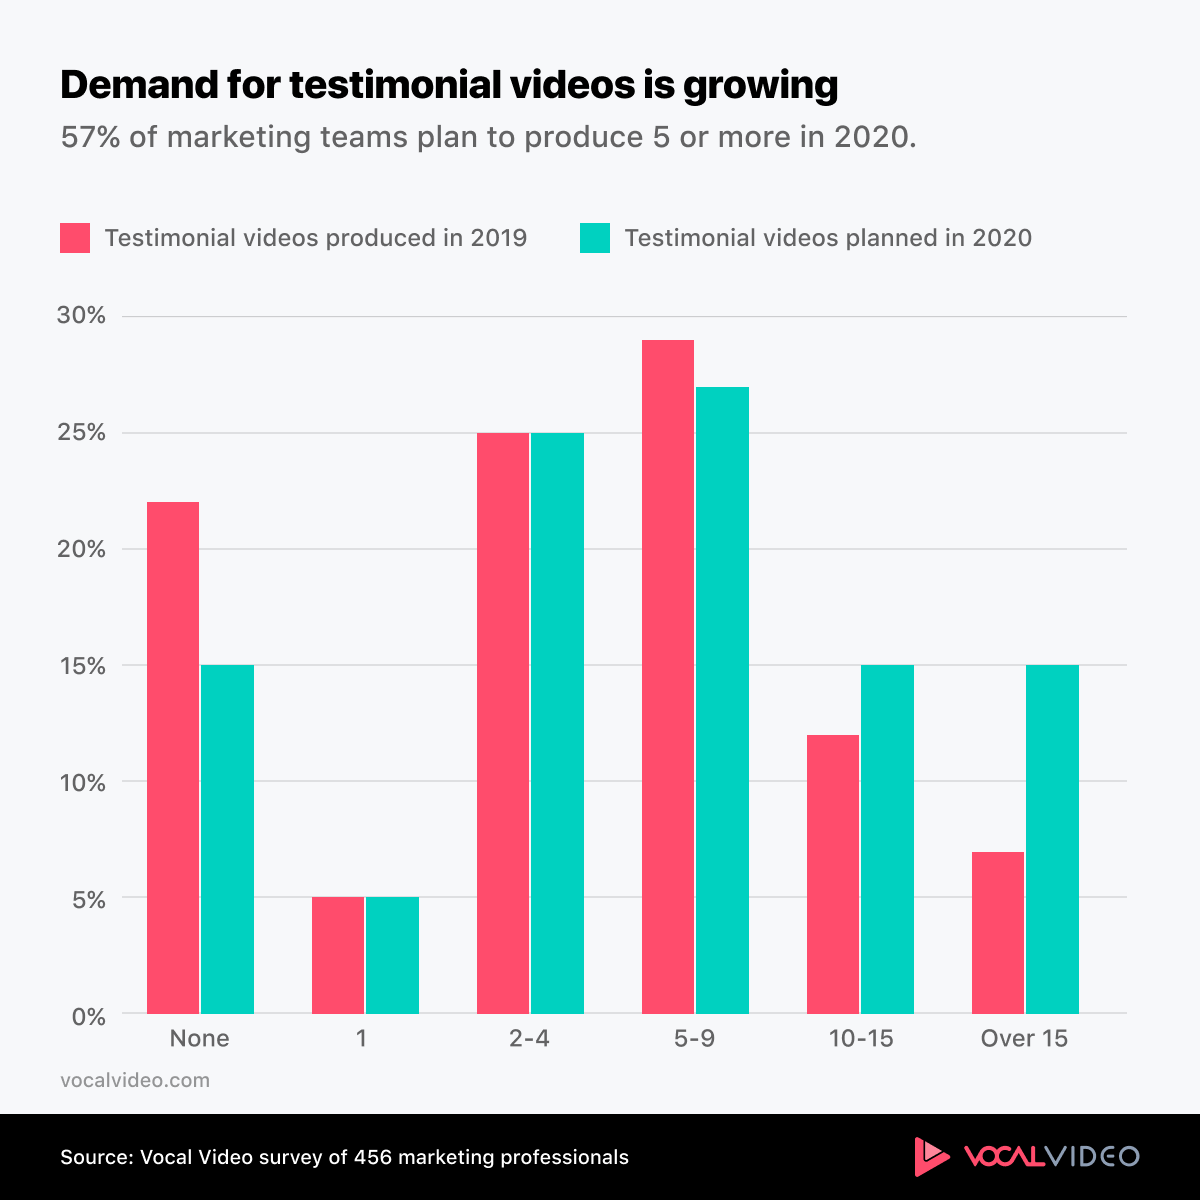 Chart showing that demand for testimonial videos is growing.